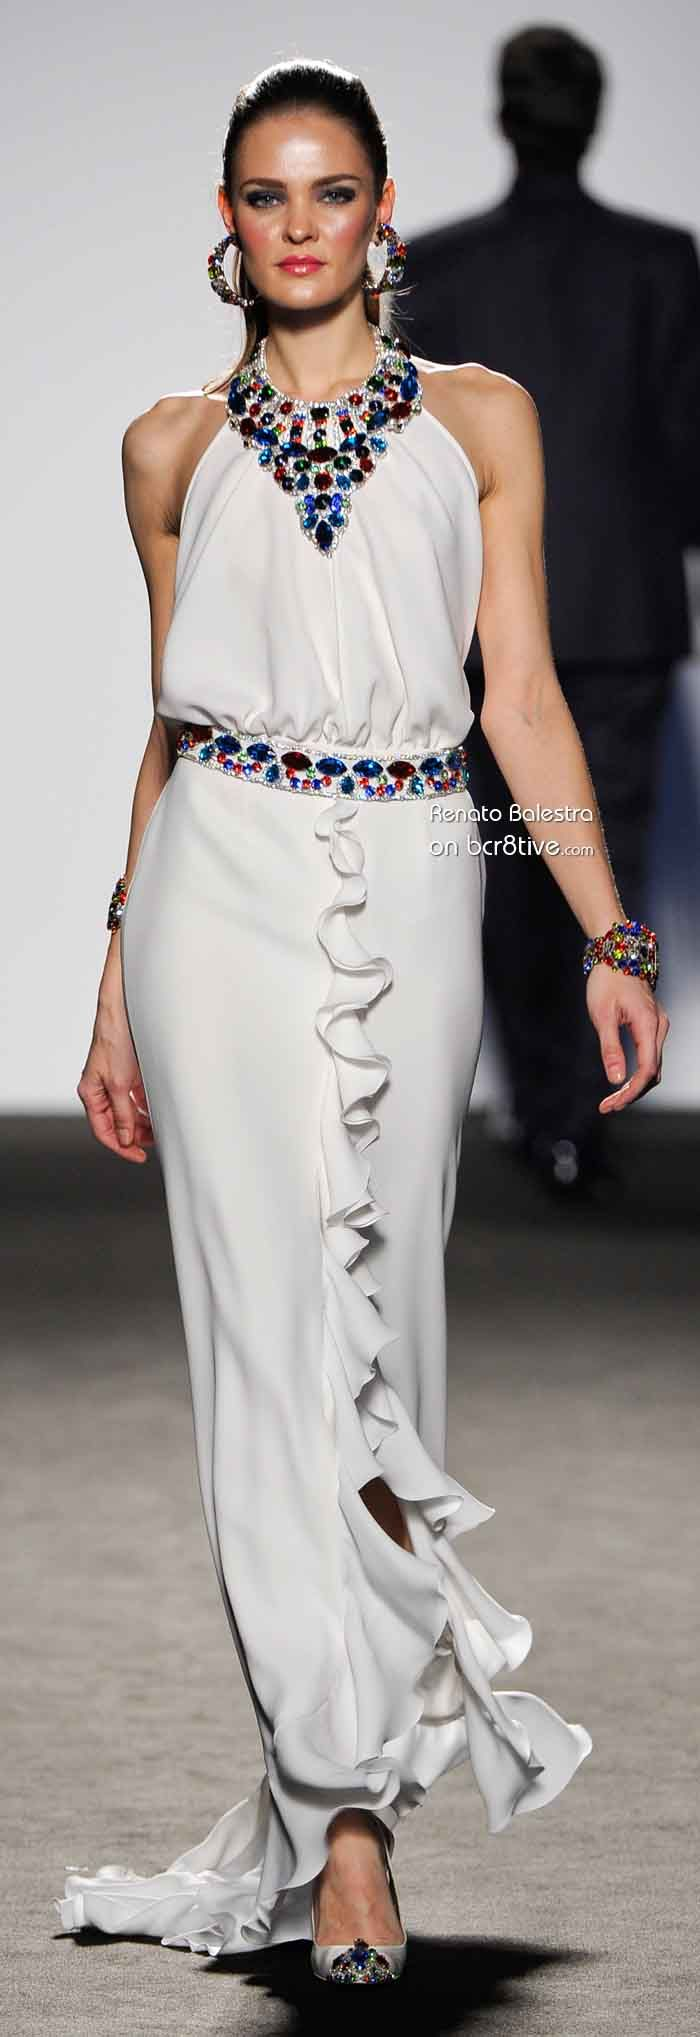 Renato Balestra  Couture www.finditforweddings.com stunning fashion evening dress